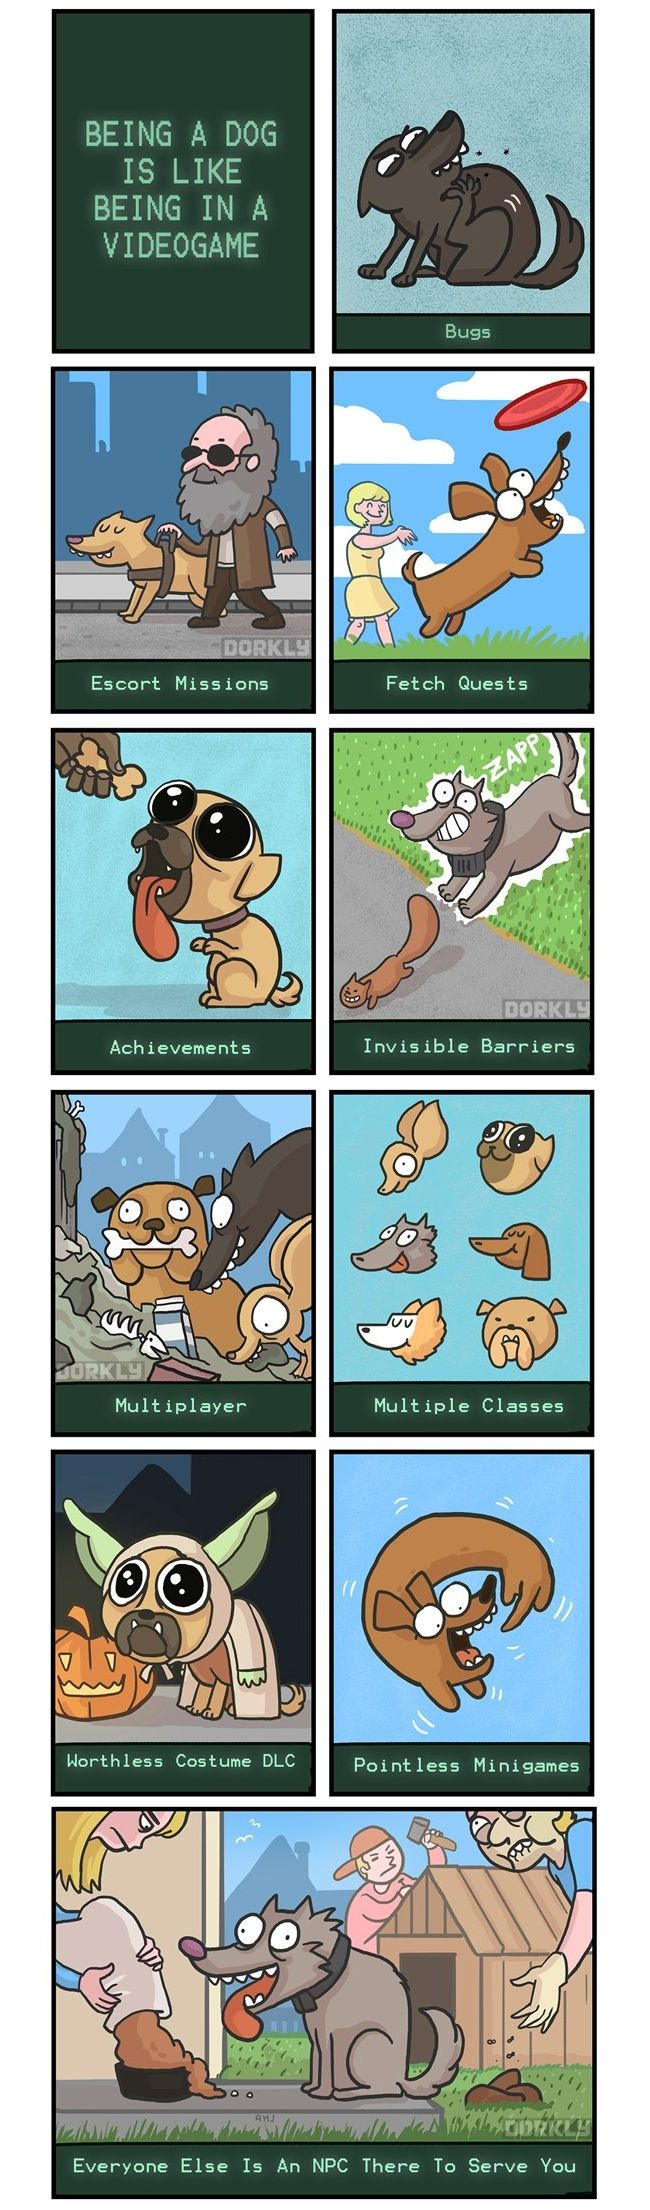 Being a Dog is Like Being in a Video Game [Comic] - How-To Geek